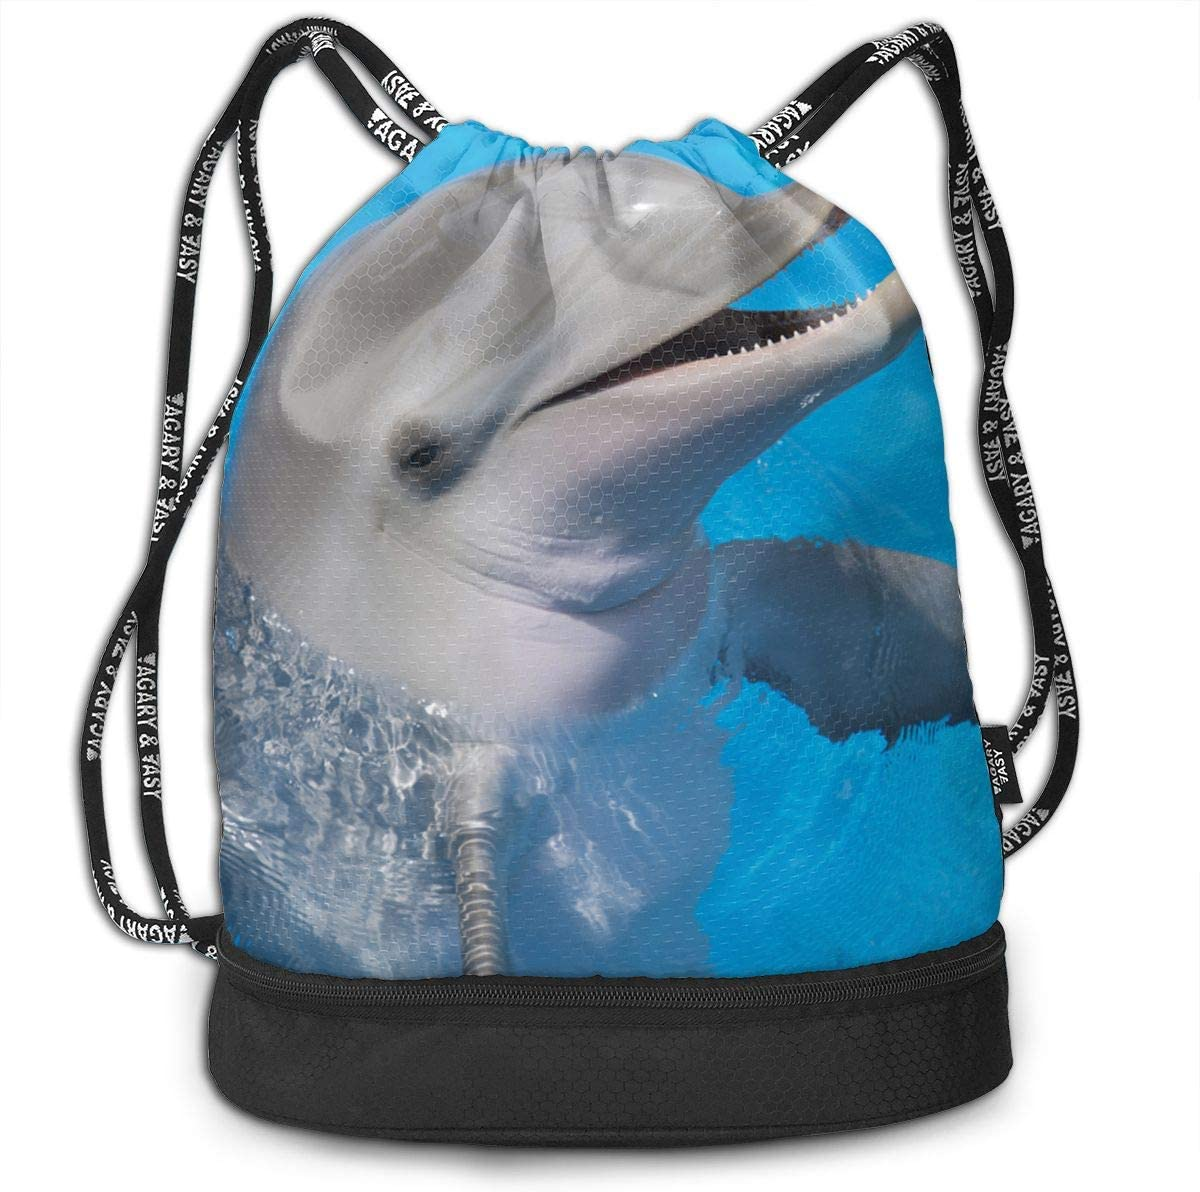 Dolphin Cinch Backpack Tote Sack Large Storage Sackpack for Gym Travel Hiking Multipurpose Drawstring Bag for Men /& Women